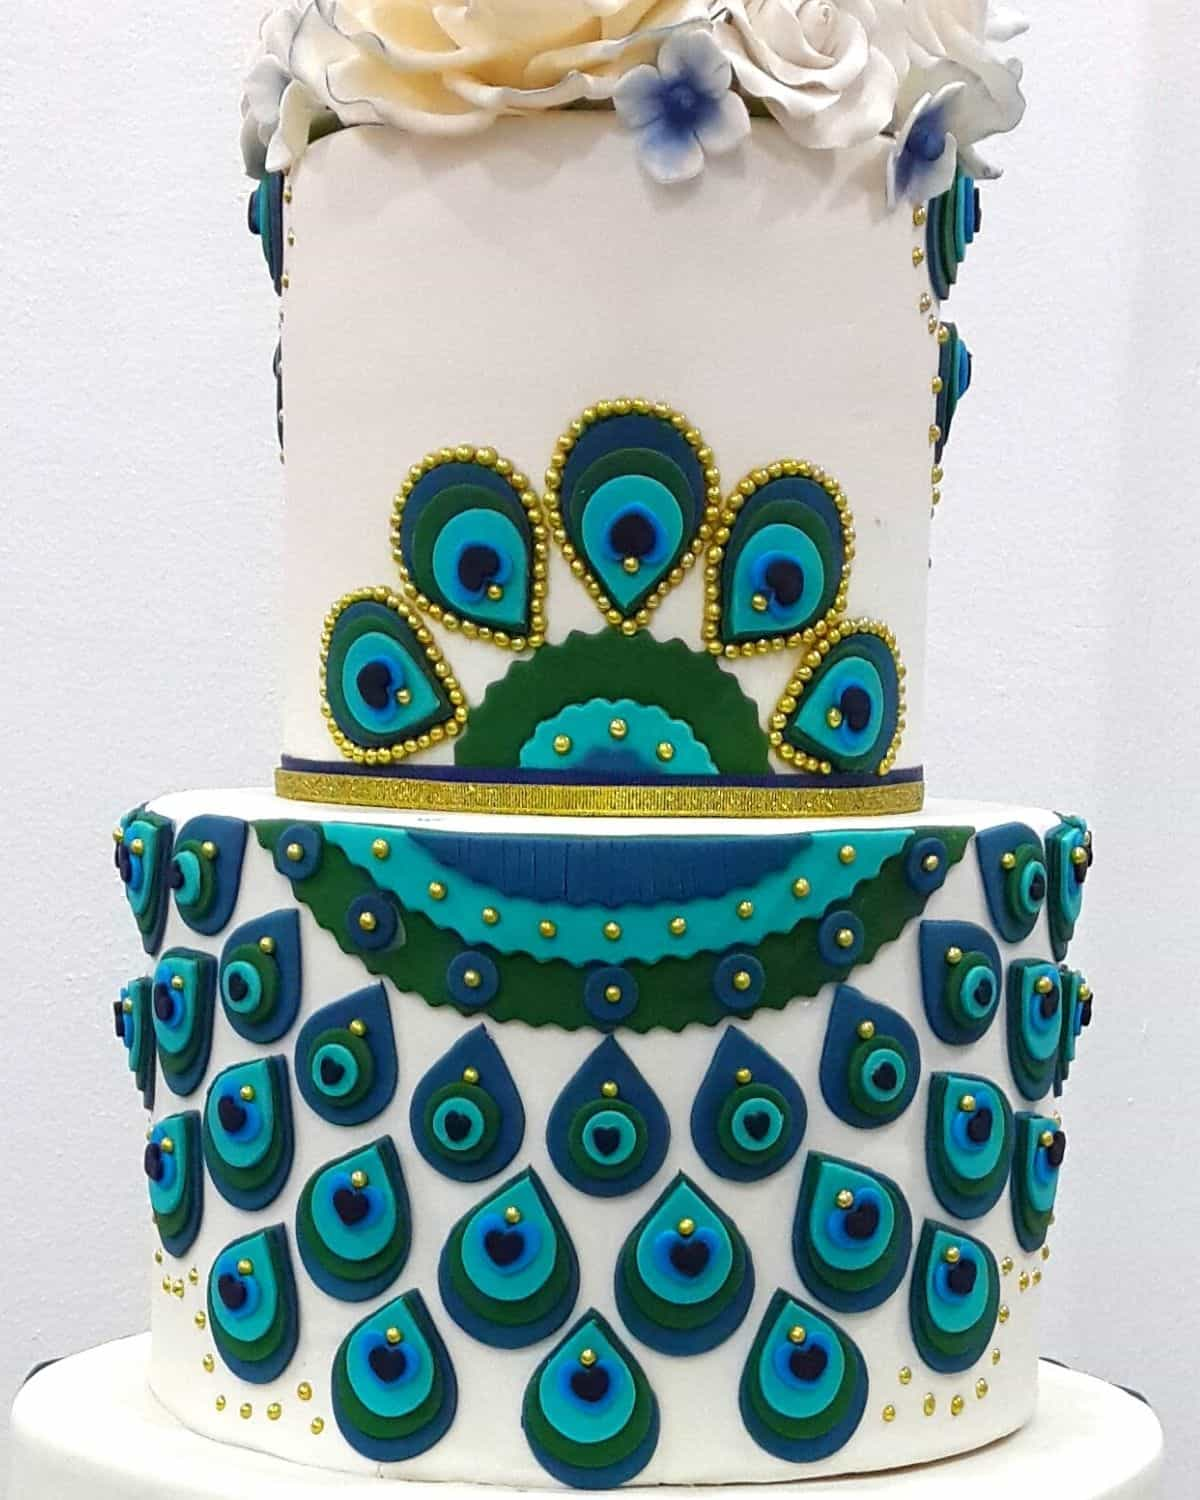 A peacock inspired tiered cake